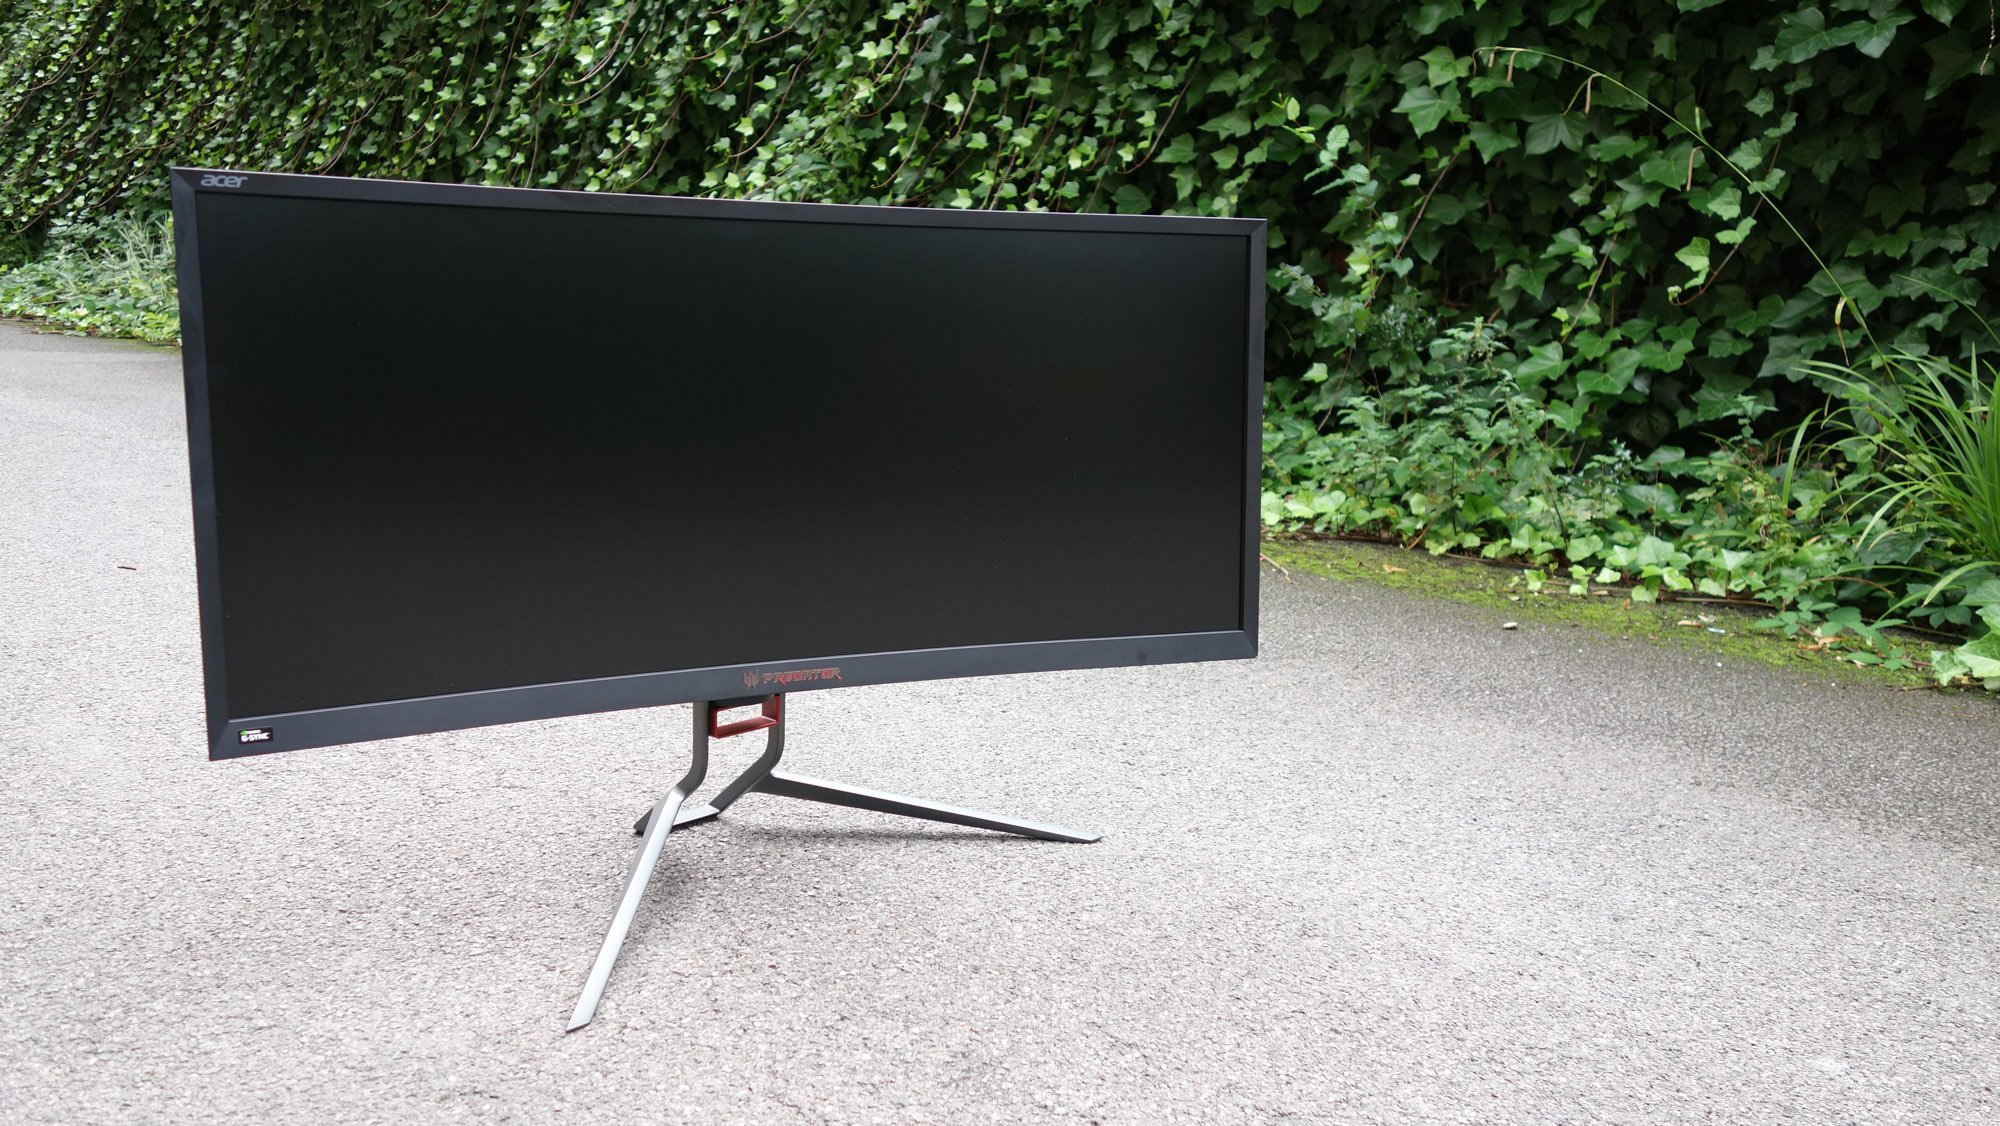 Acer Predator Z35P review: A great-looking gaming monitor